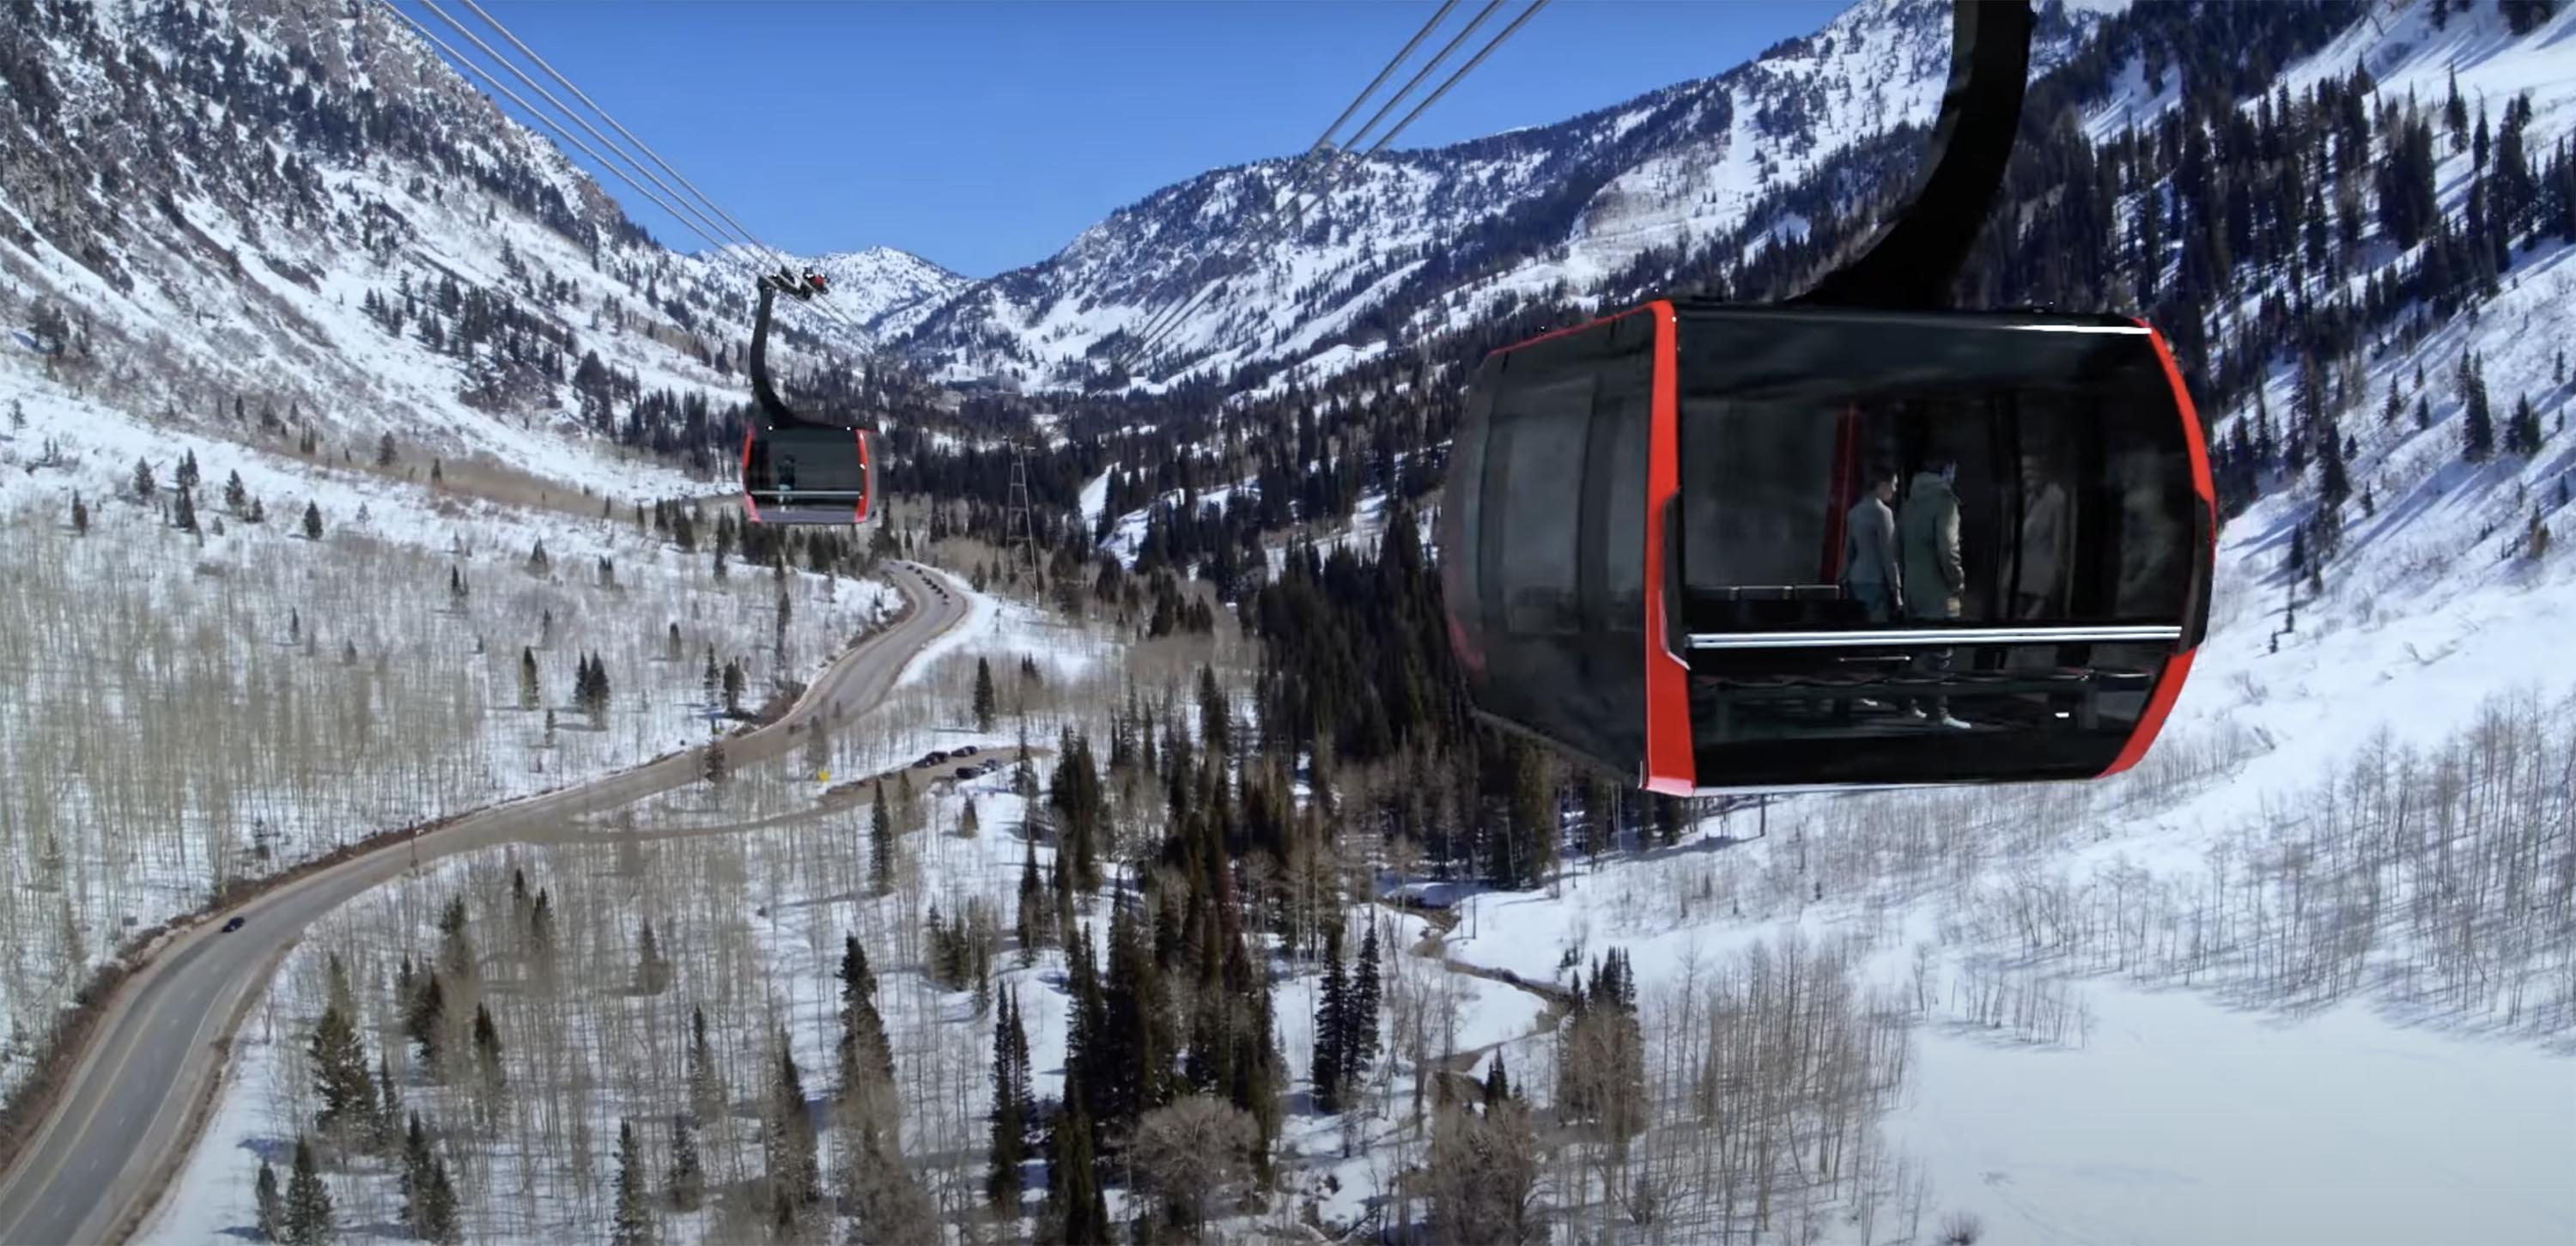 Gondola Works released an animated video that depicts what a gondola system would look like in Little Cottonwood Canyon.